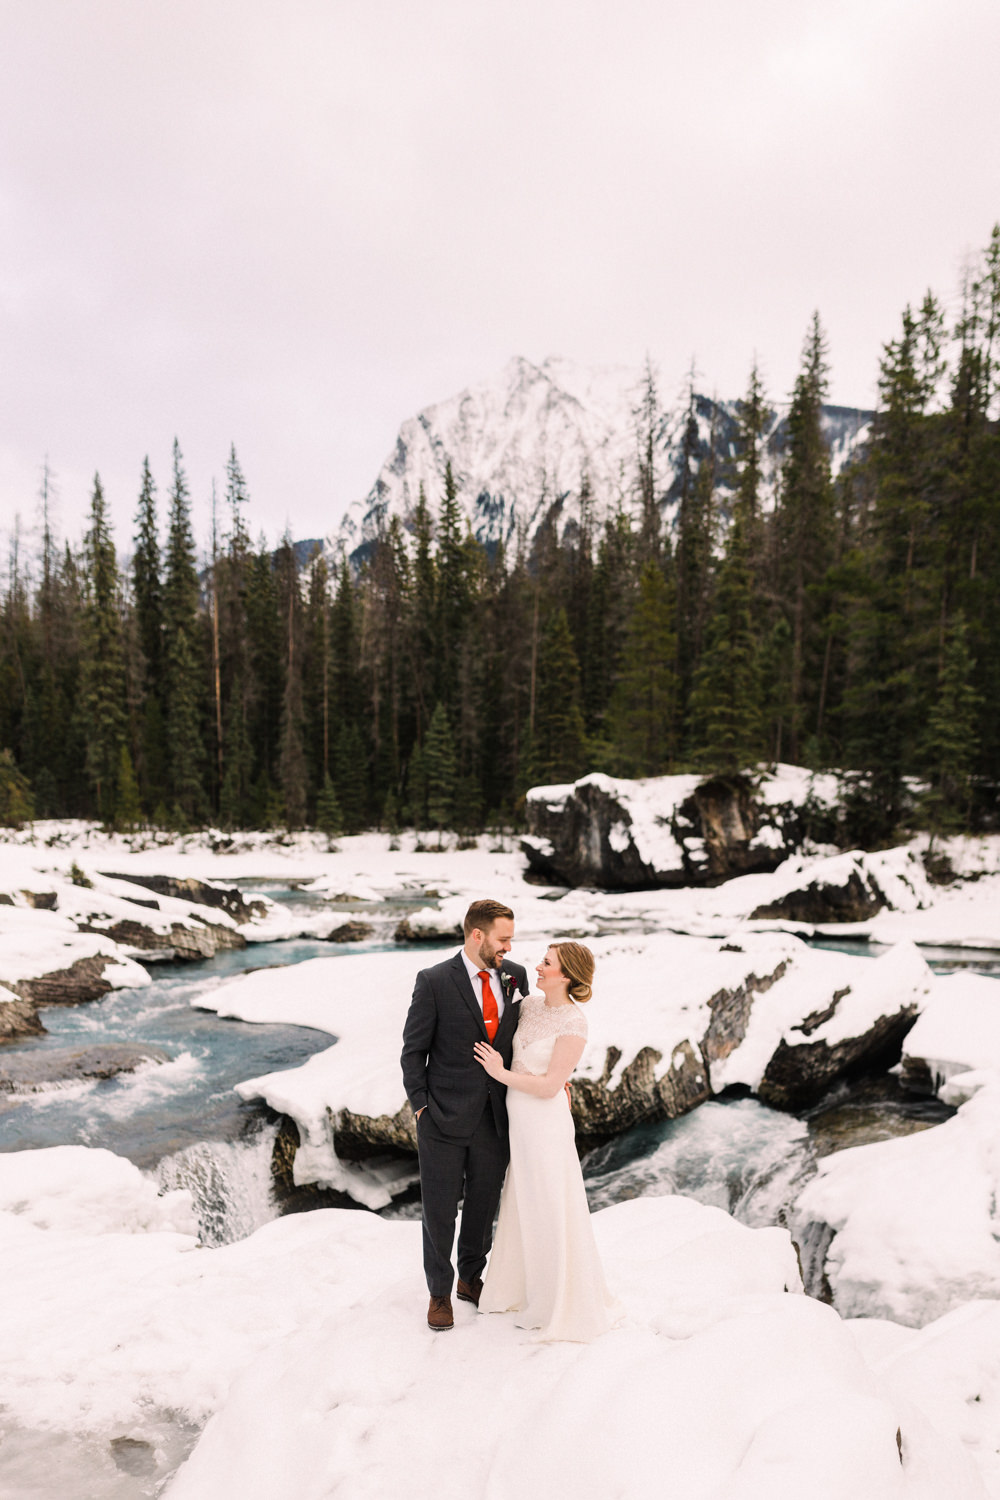 Matt-and-Jennas-Emerald-Lake-winter-wedding-21.jpg